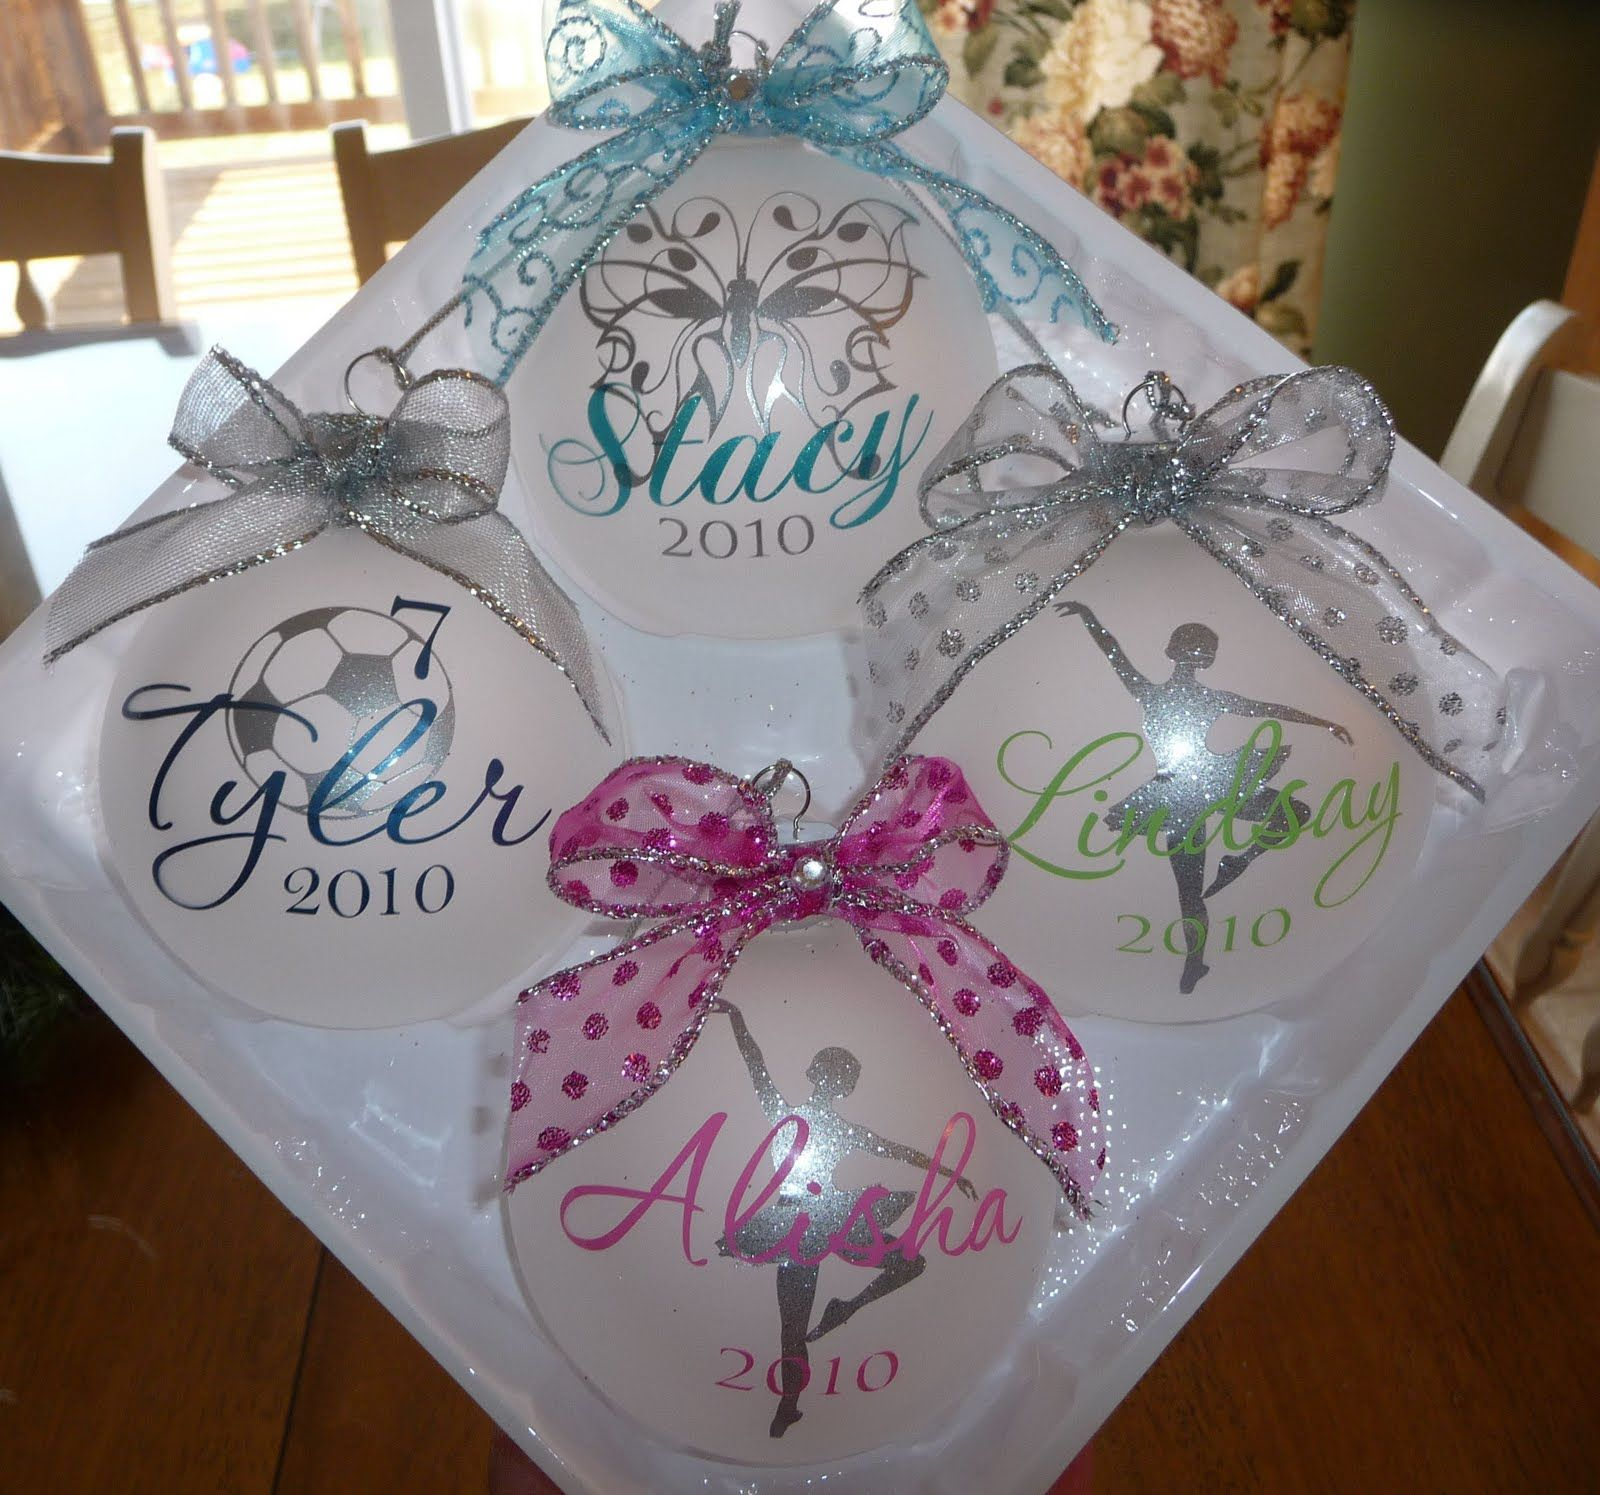 Cher's Signs by Design Personalized Ornaments Cricut